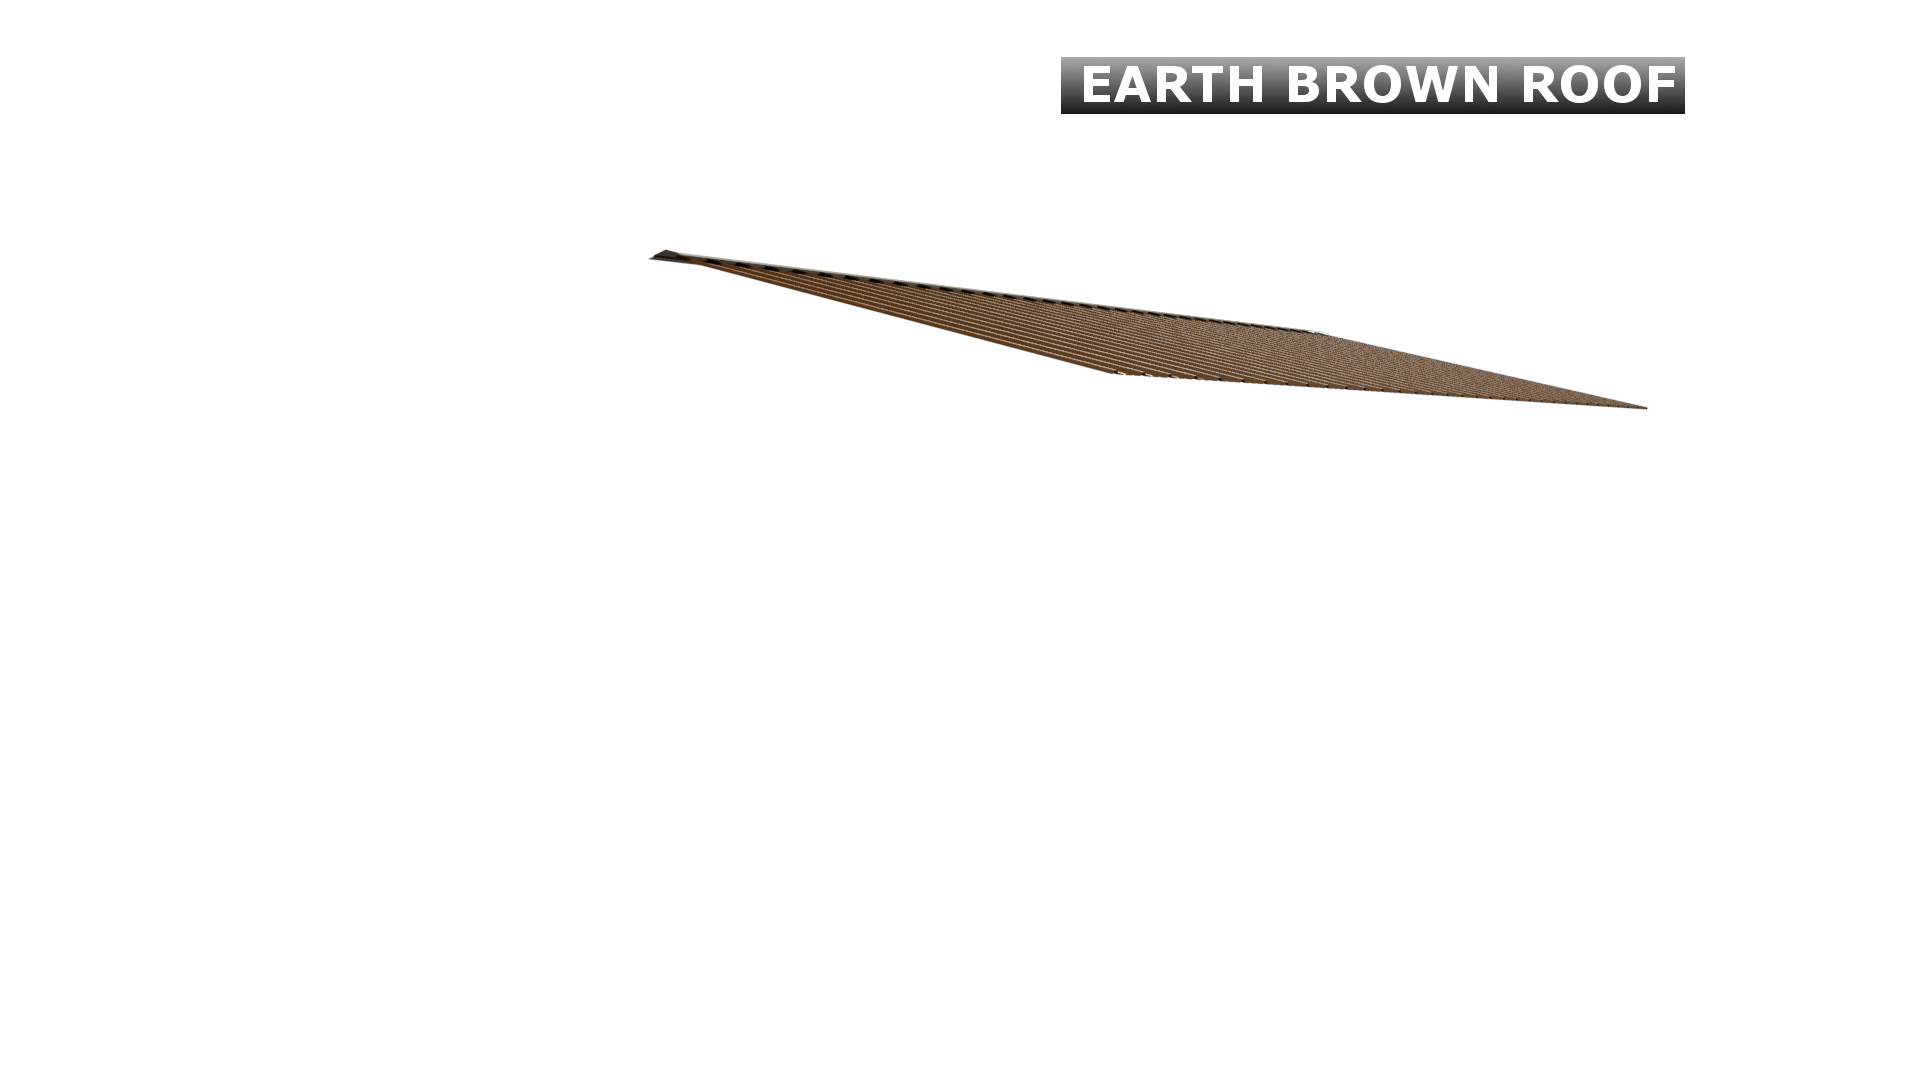 EARTH BROWN ROOF